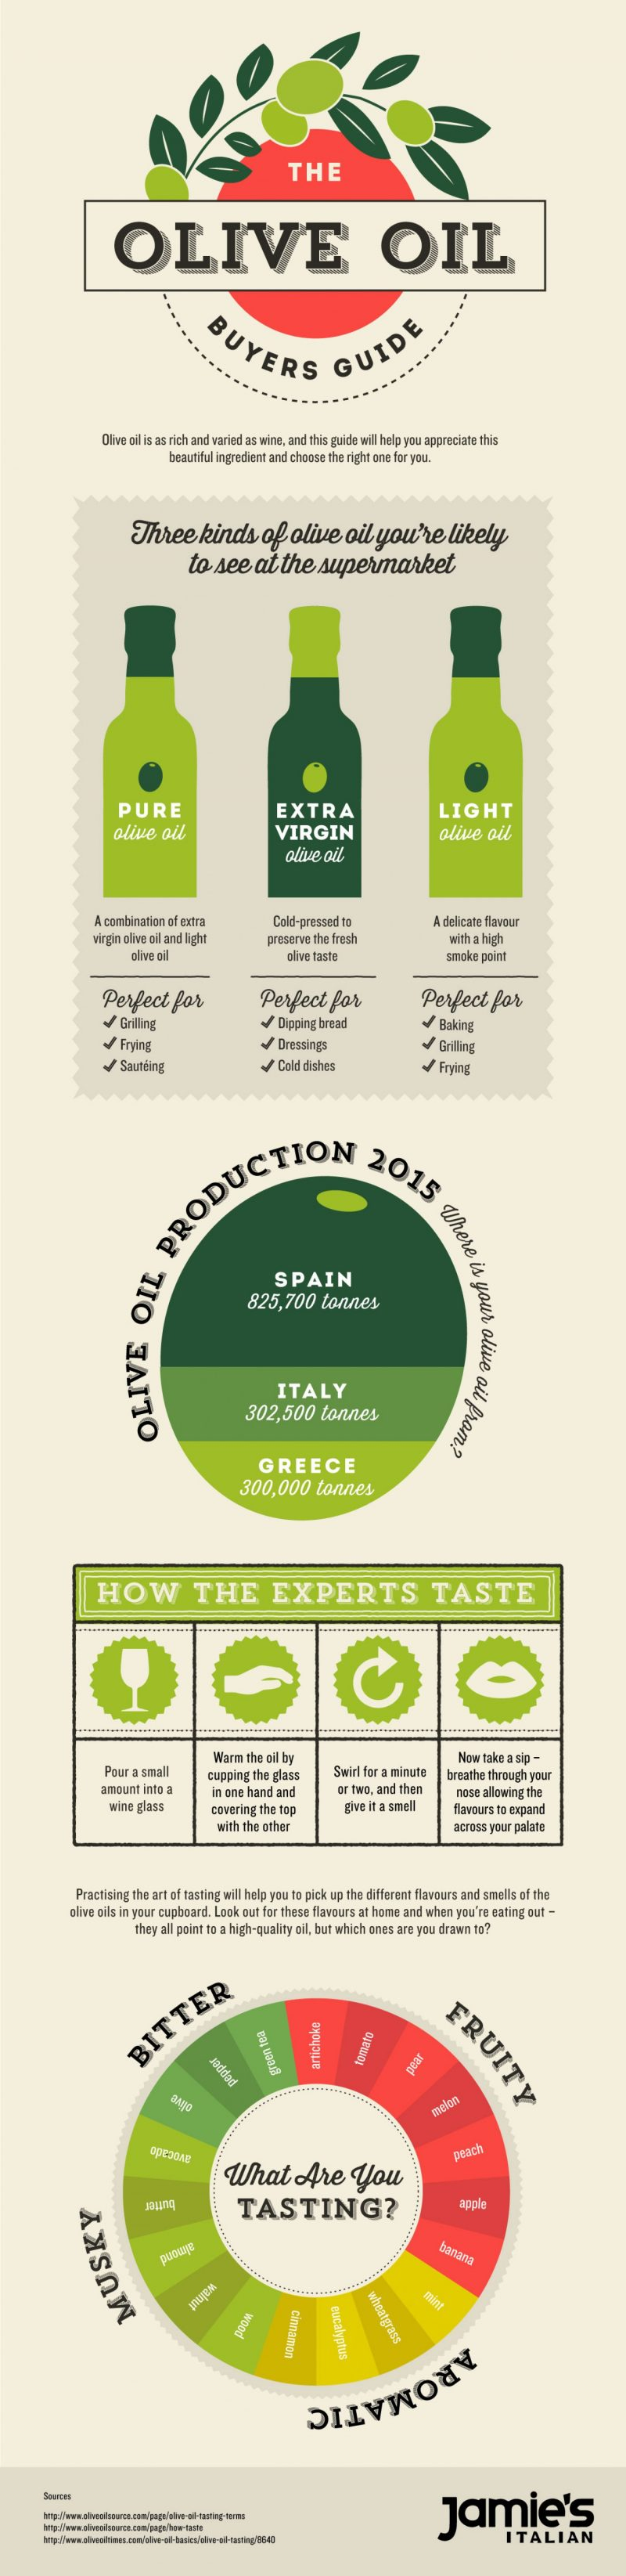 All about Olive Oil with Jamie's Italian